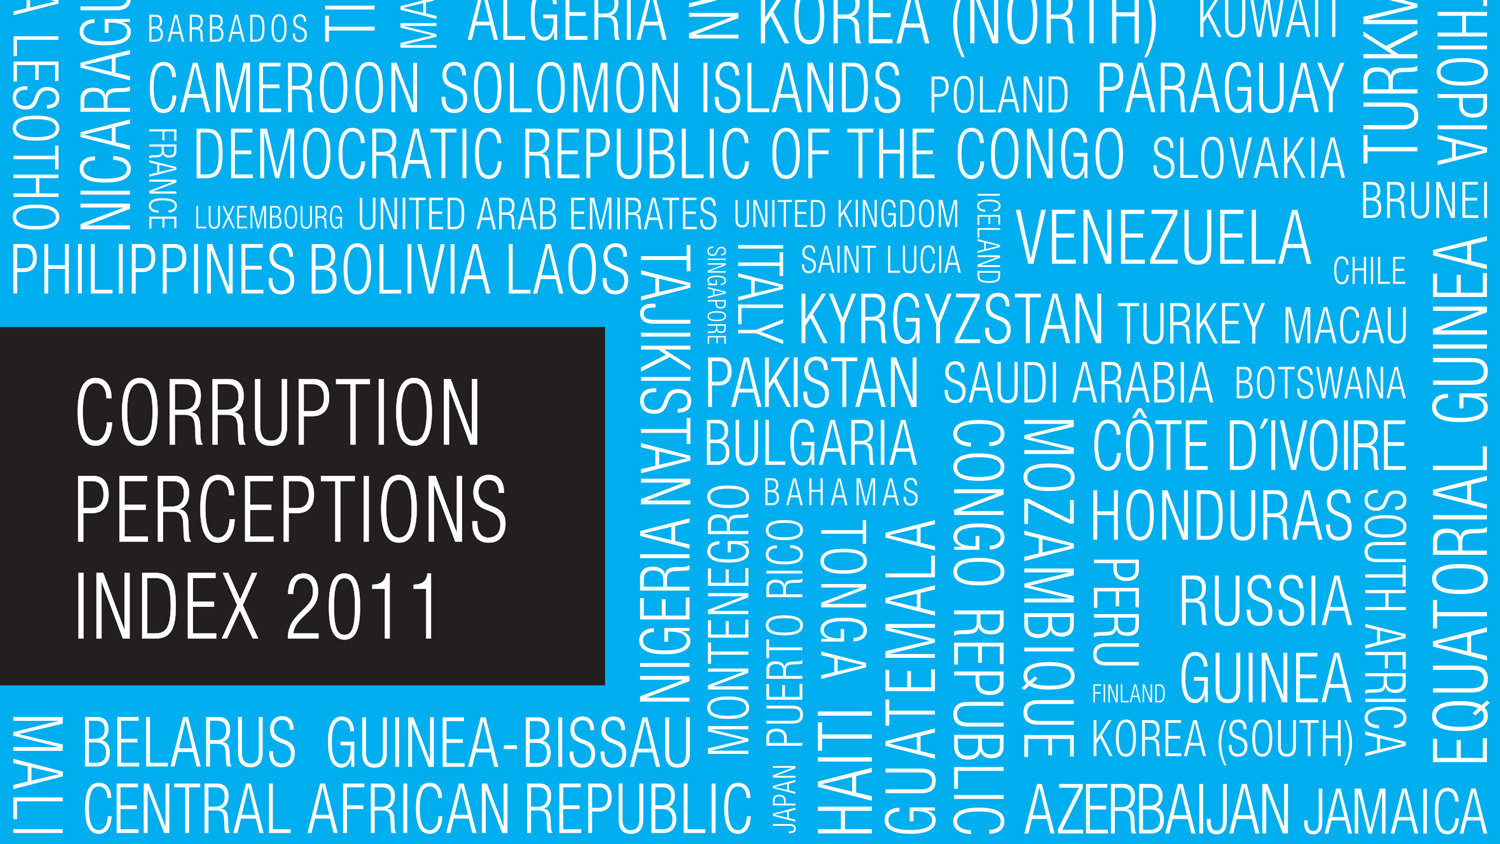 2011 Corruption Perceptions Index